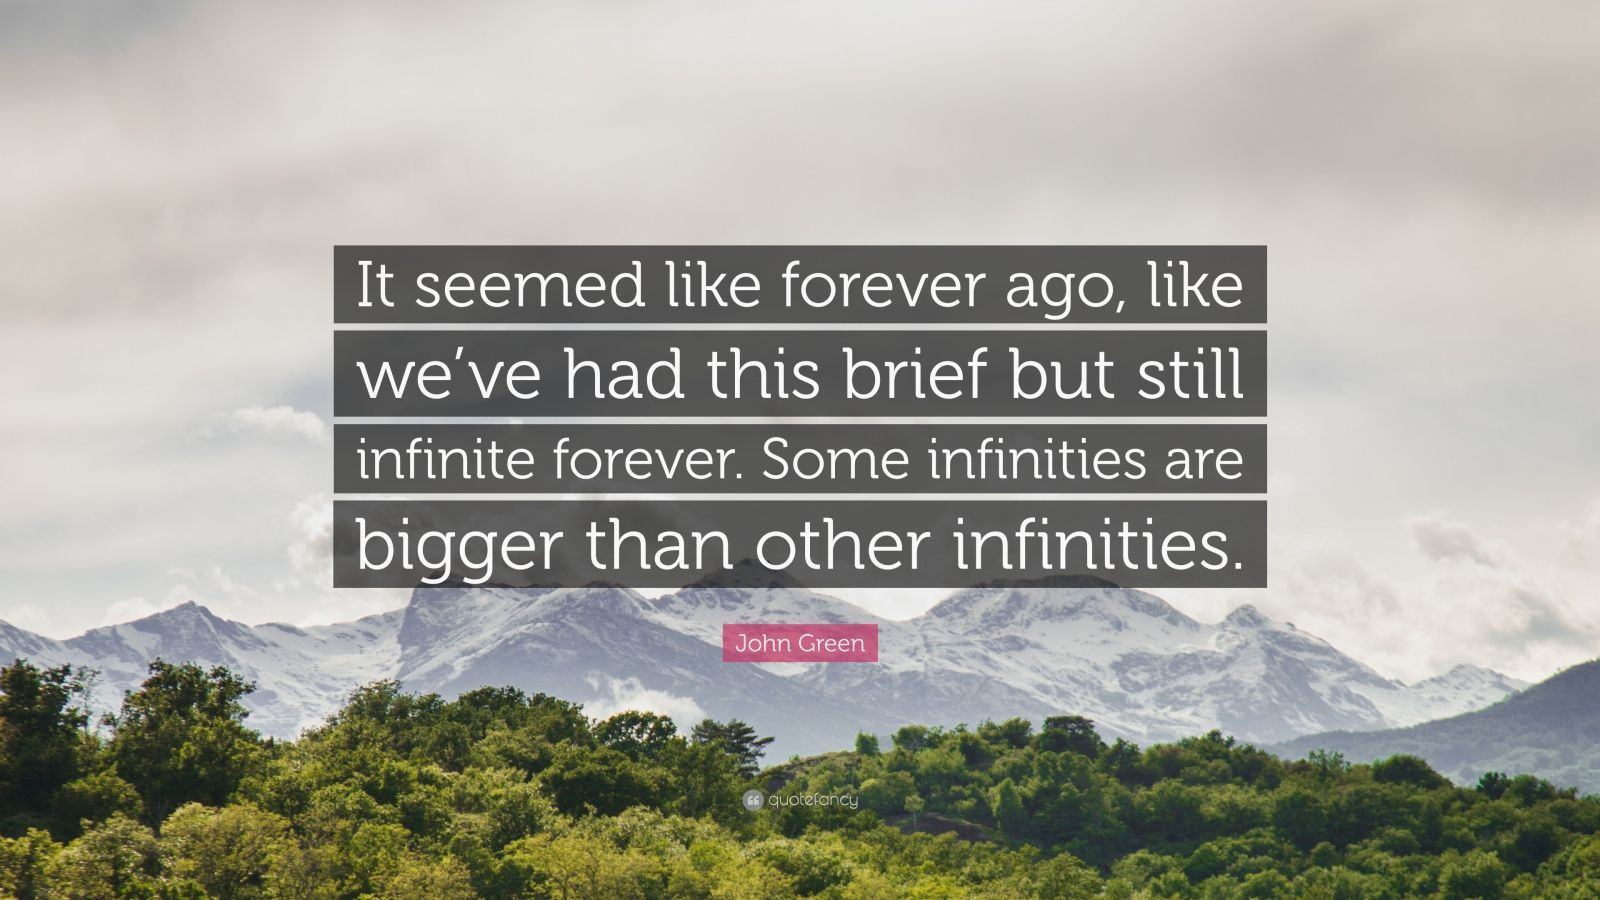 """John Green Quote: """"It seemed like forever ago, like we've had this brief but still infinite forever. Some infinities are bigger than other infinities."""""""